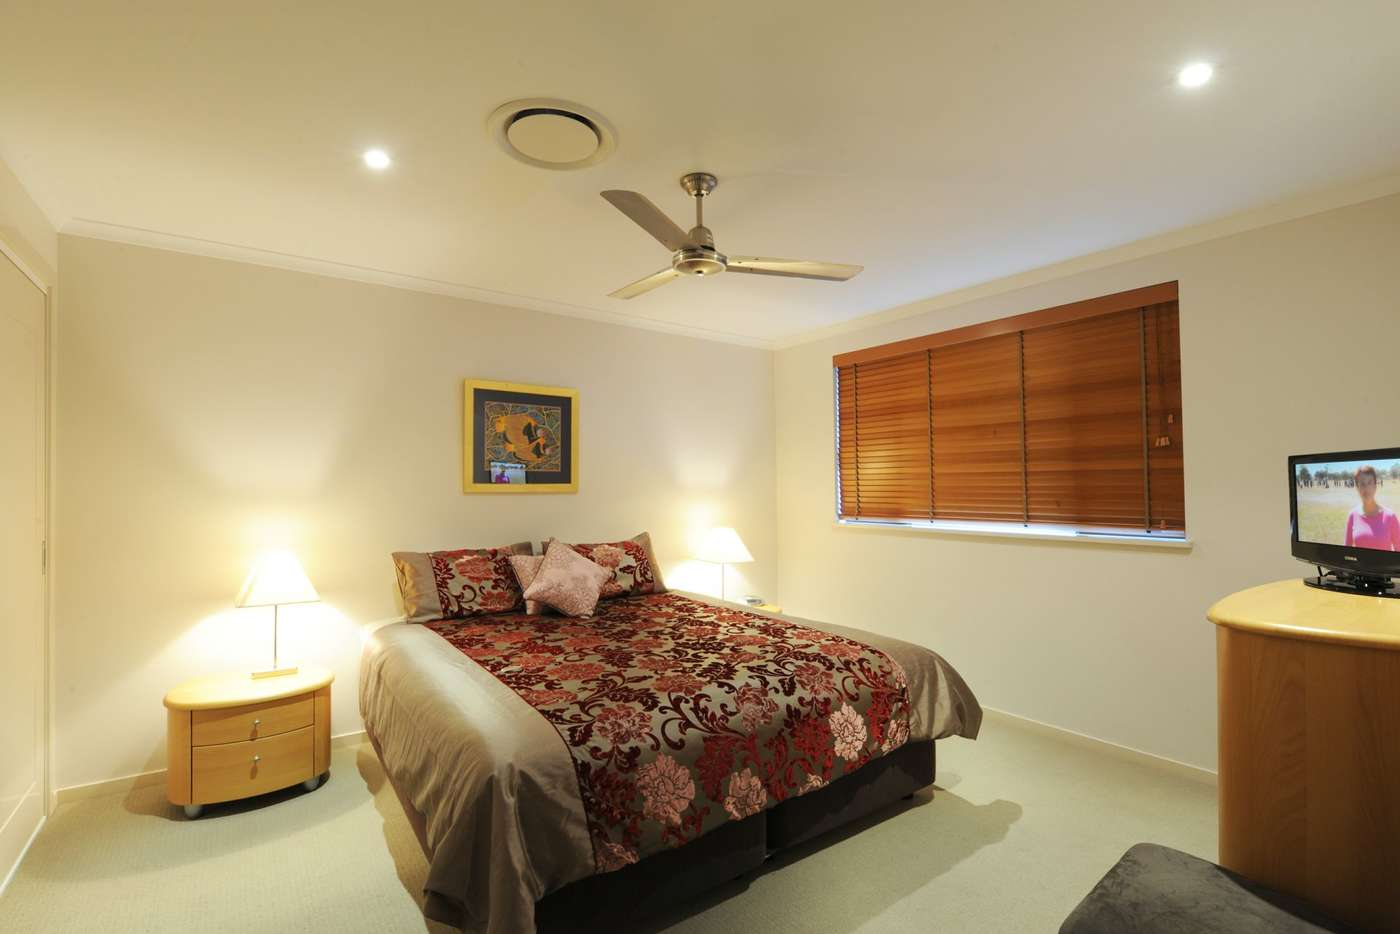 Seventh view of Homely unit listing, 2/38 Marandowie Drive, Iluka NSW 2466